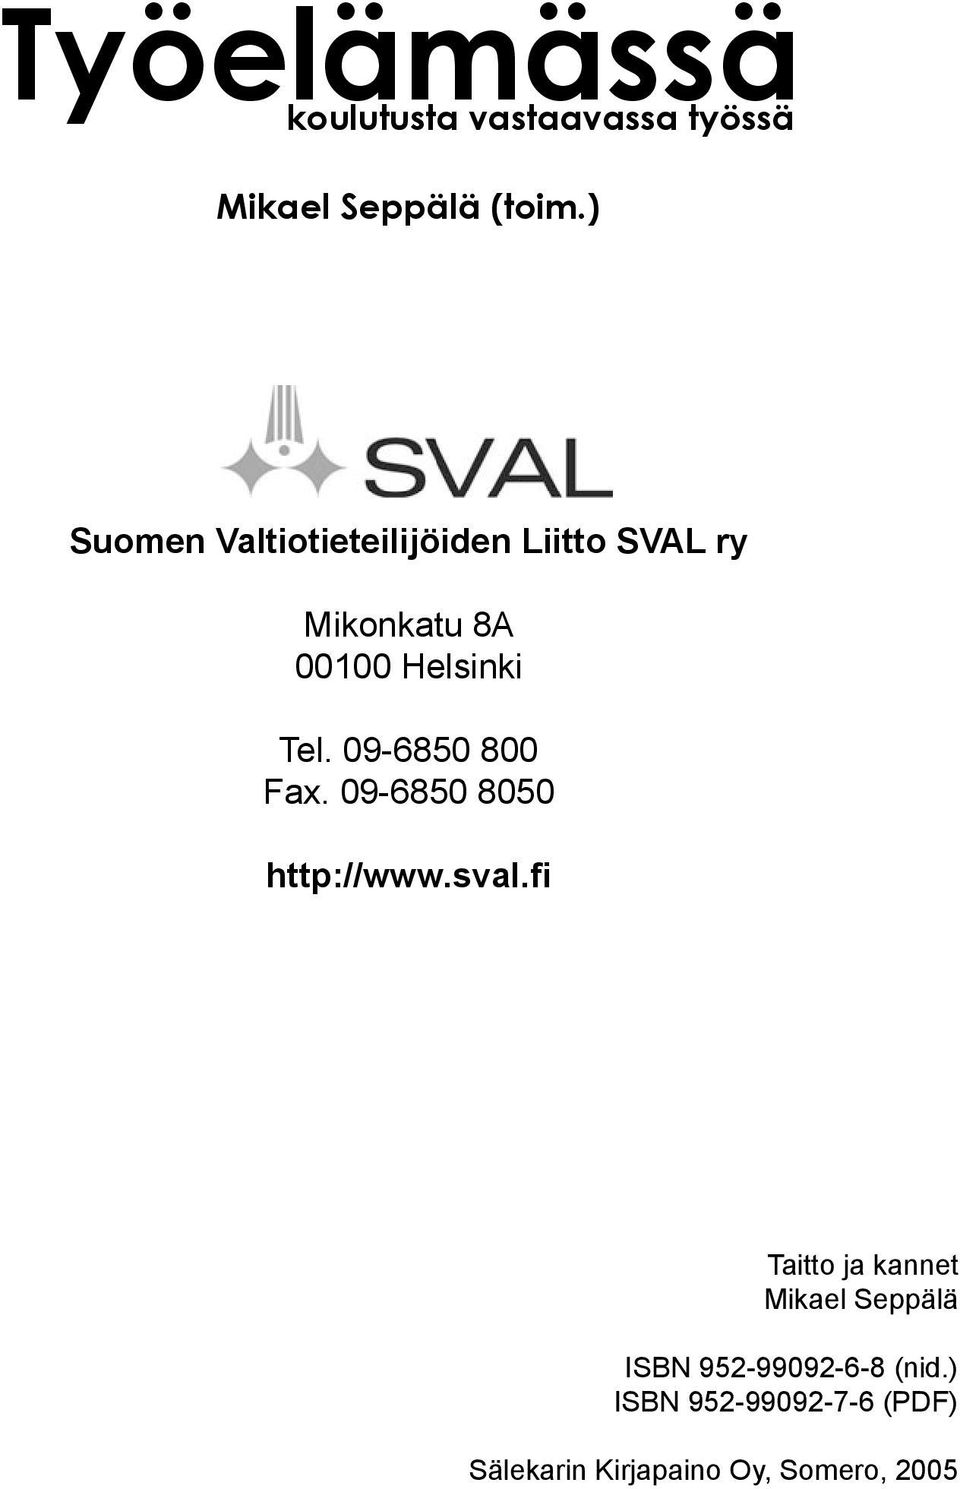 09-6850 800 Fax. 09-6850 8050 http://www.sval.